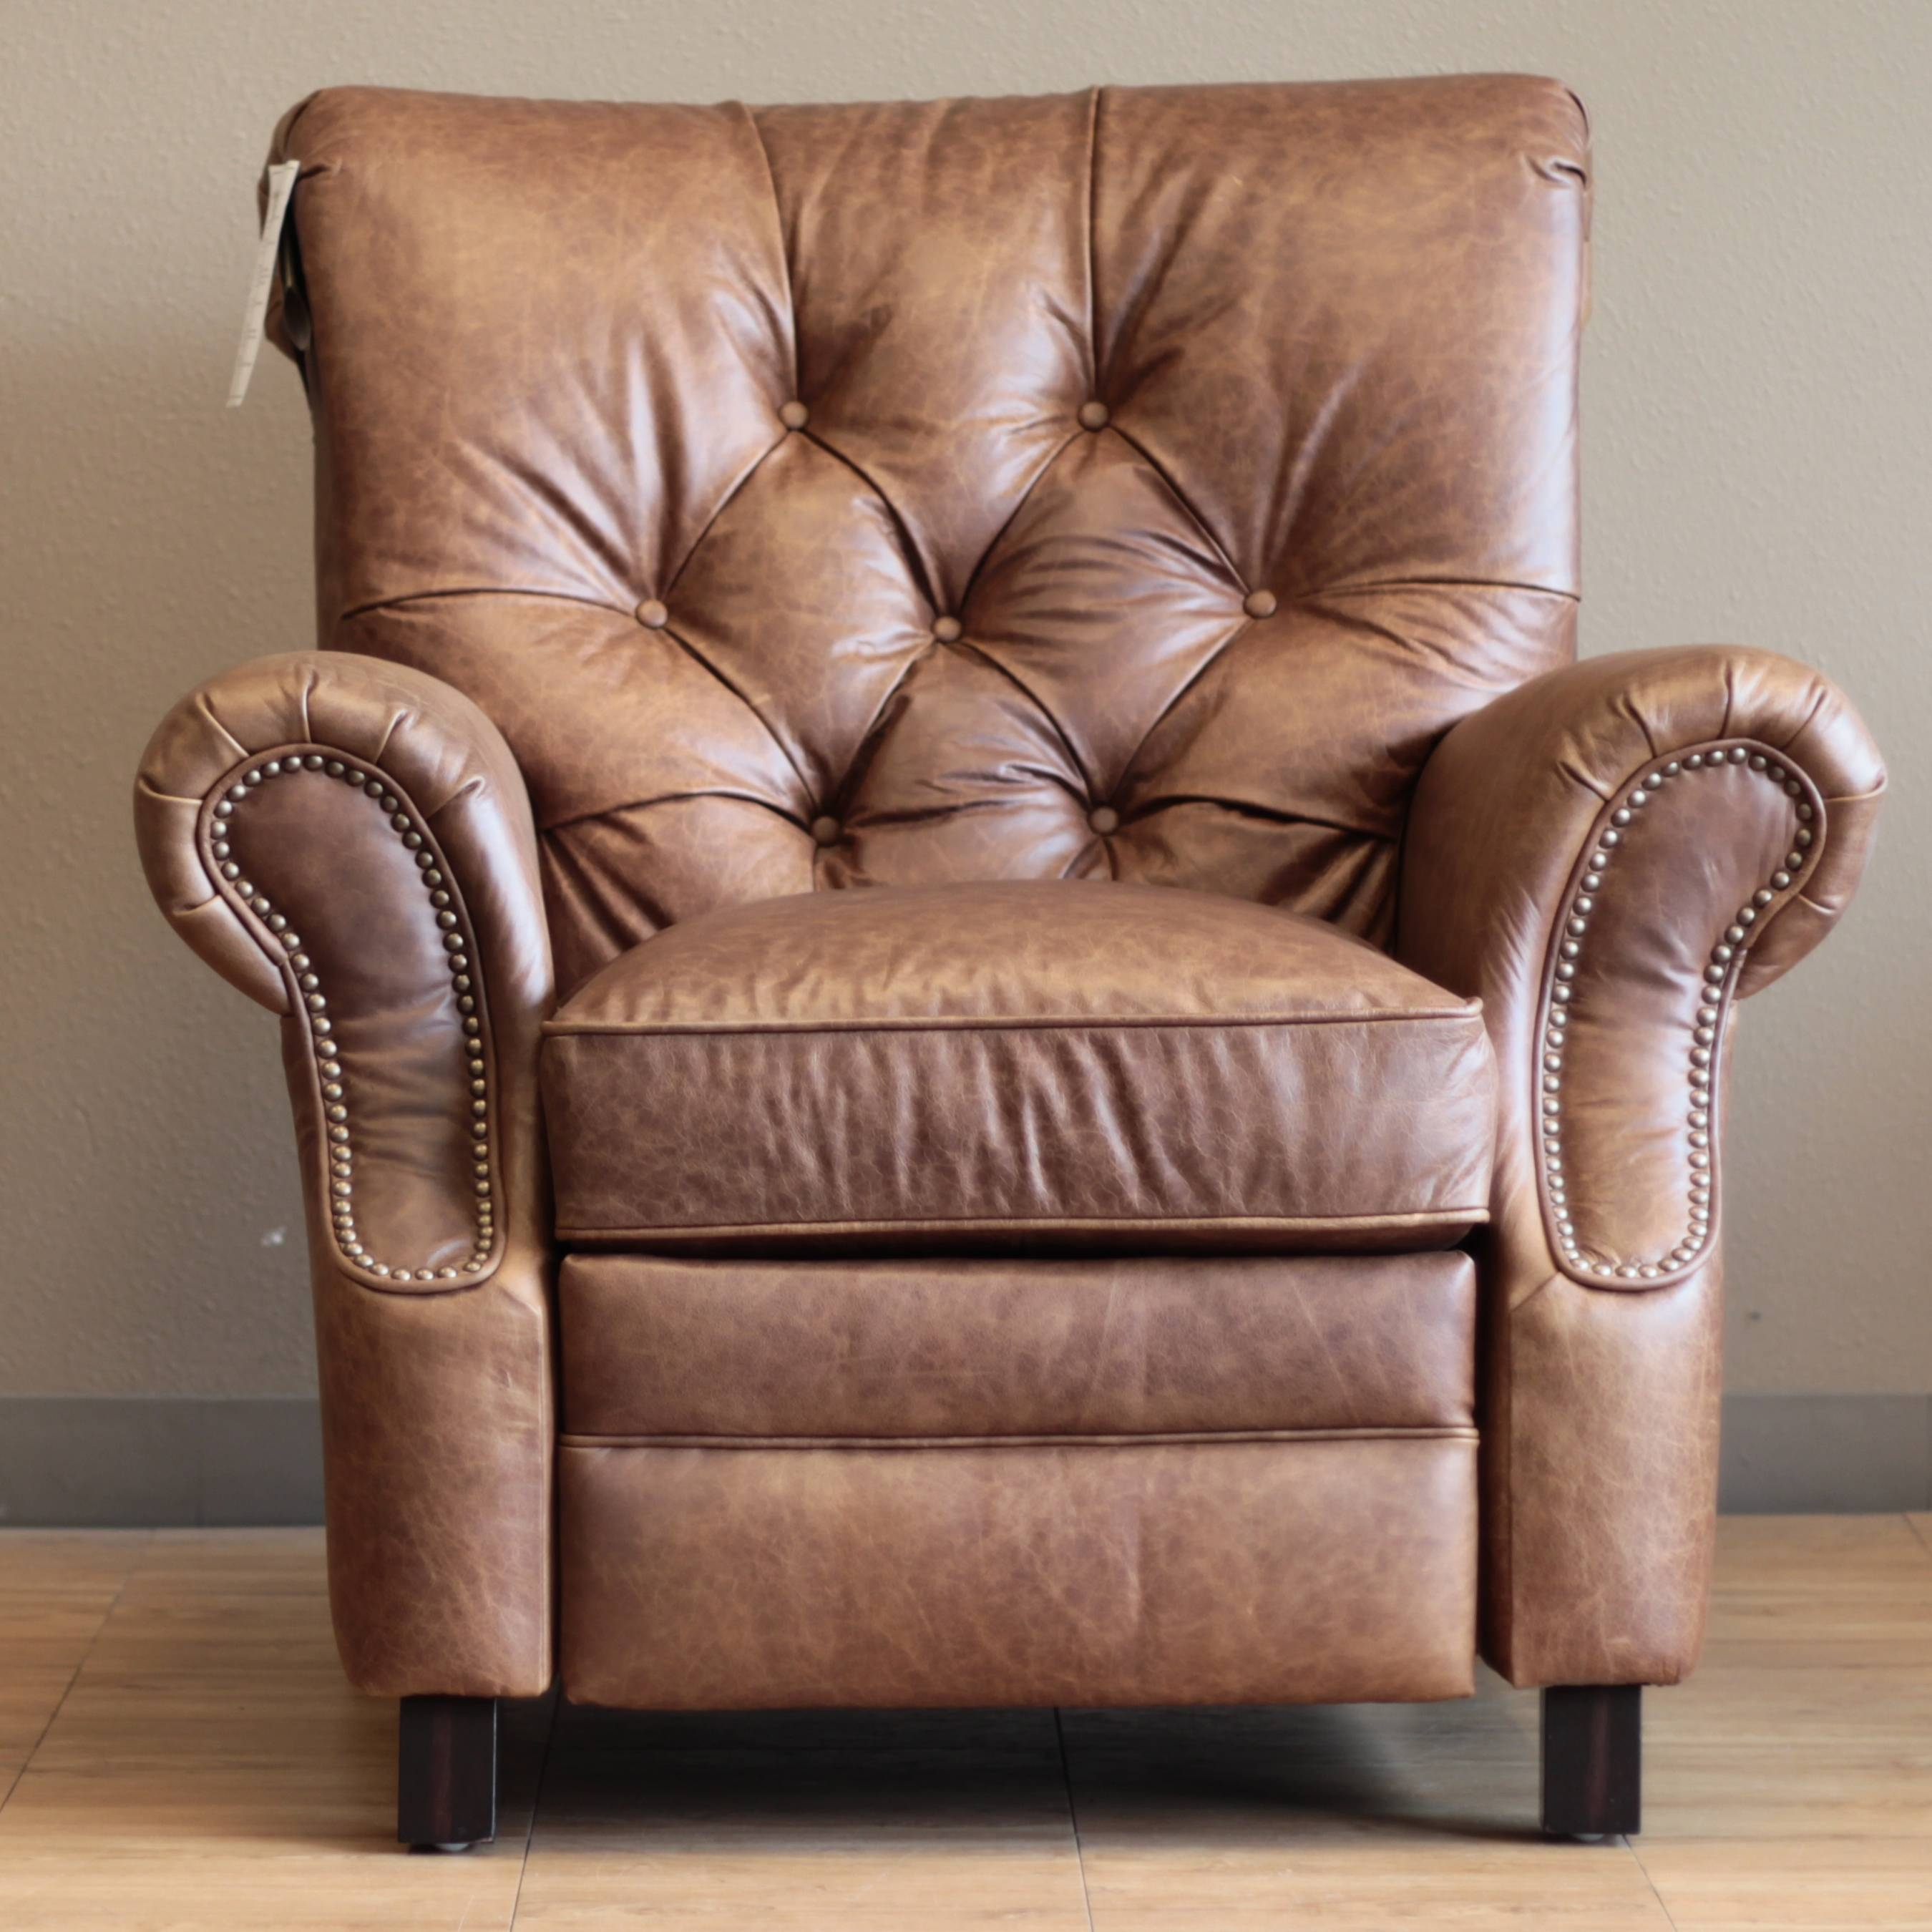 Barcalounger Phoenix Ii Recliner Chair - Leather Recliner Chair intended for Barcalounger Sofas (Image 9 of 15)